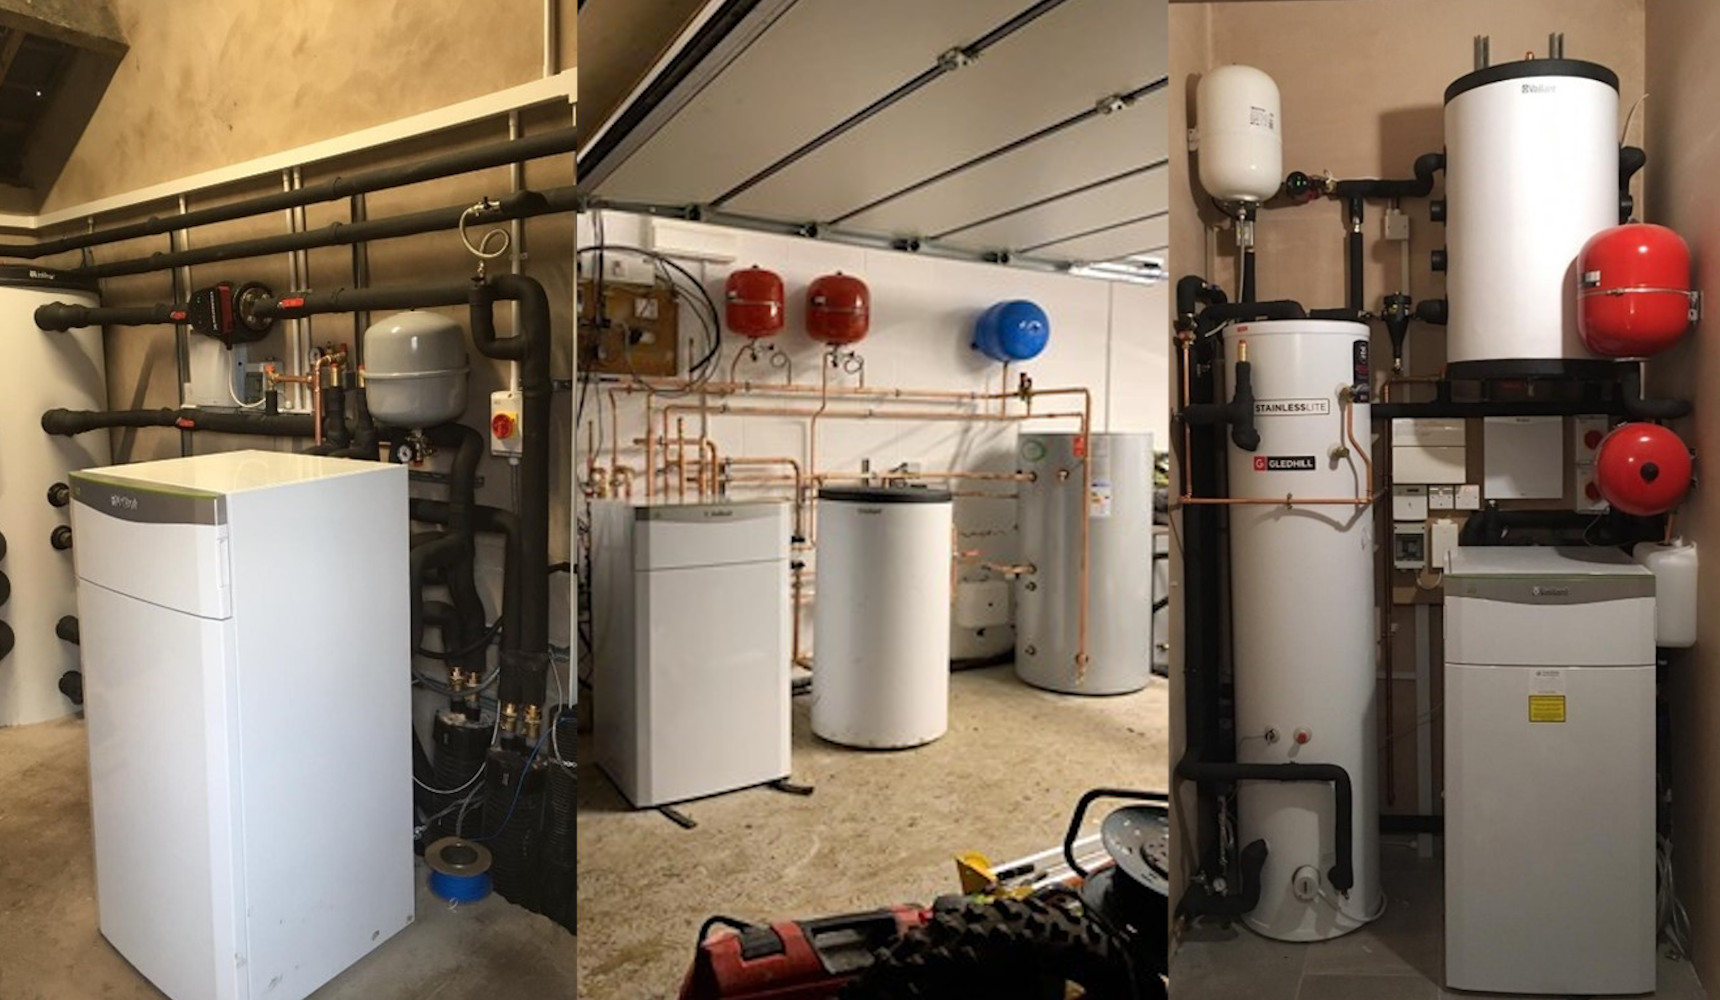 Three images of Heatpumps